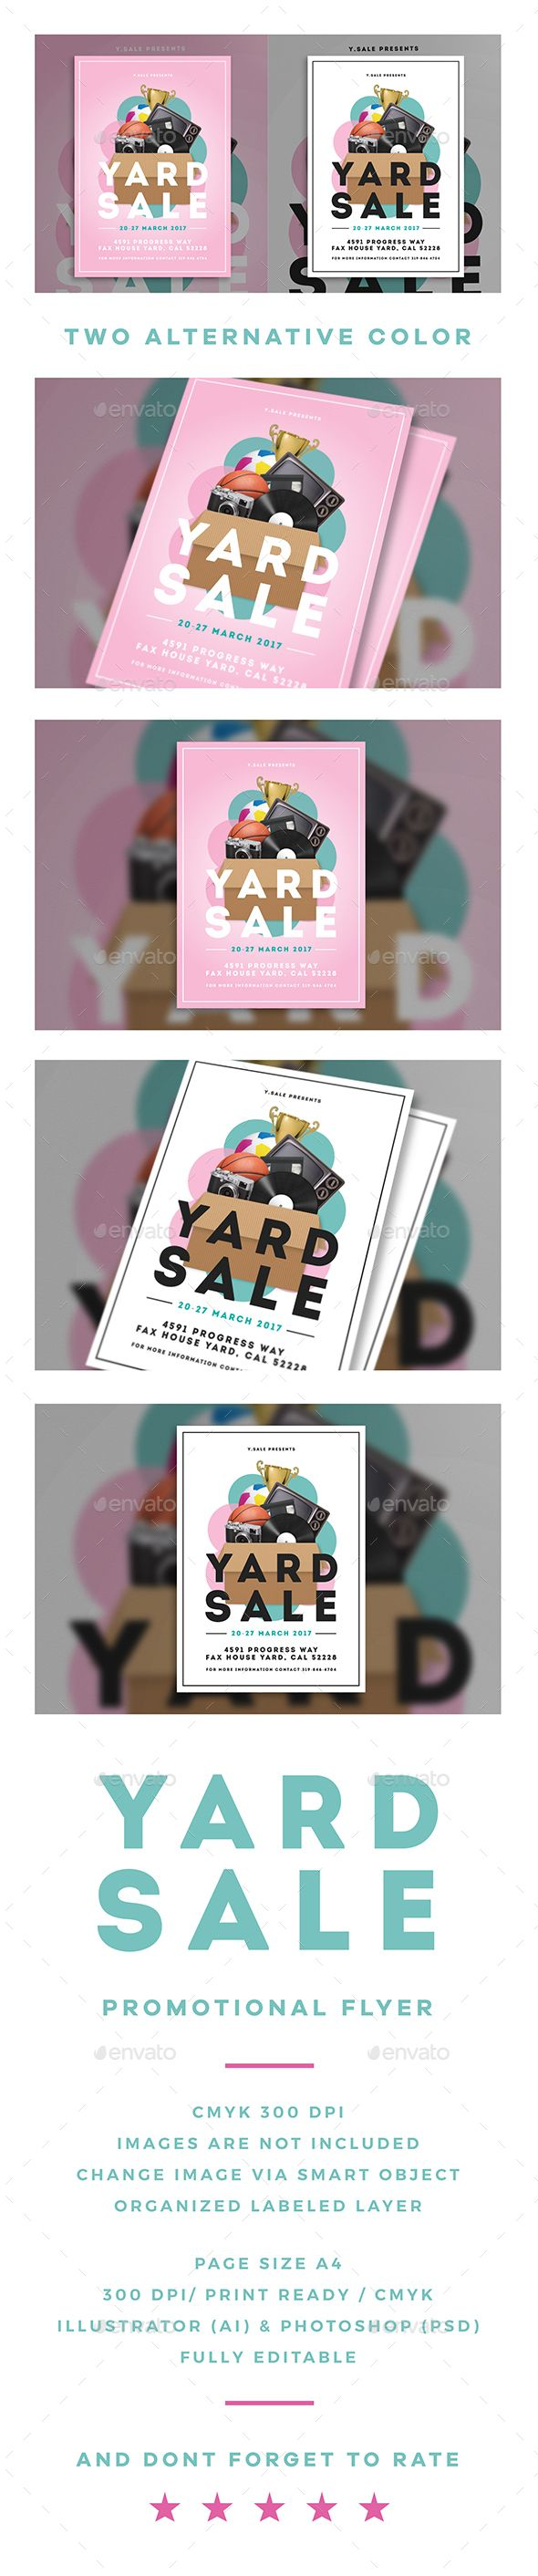 "Garage Sale Flyer You¡¯ve got a lot of unused things back home that you wanted to sell? and you¡¯ve been thinking that you need to do some garage sale at your place?? Need a flyer to tell people that you doing garage sale???Let this ¡°Garage Sale Flyer"" help you"